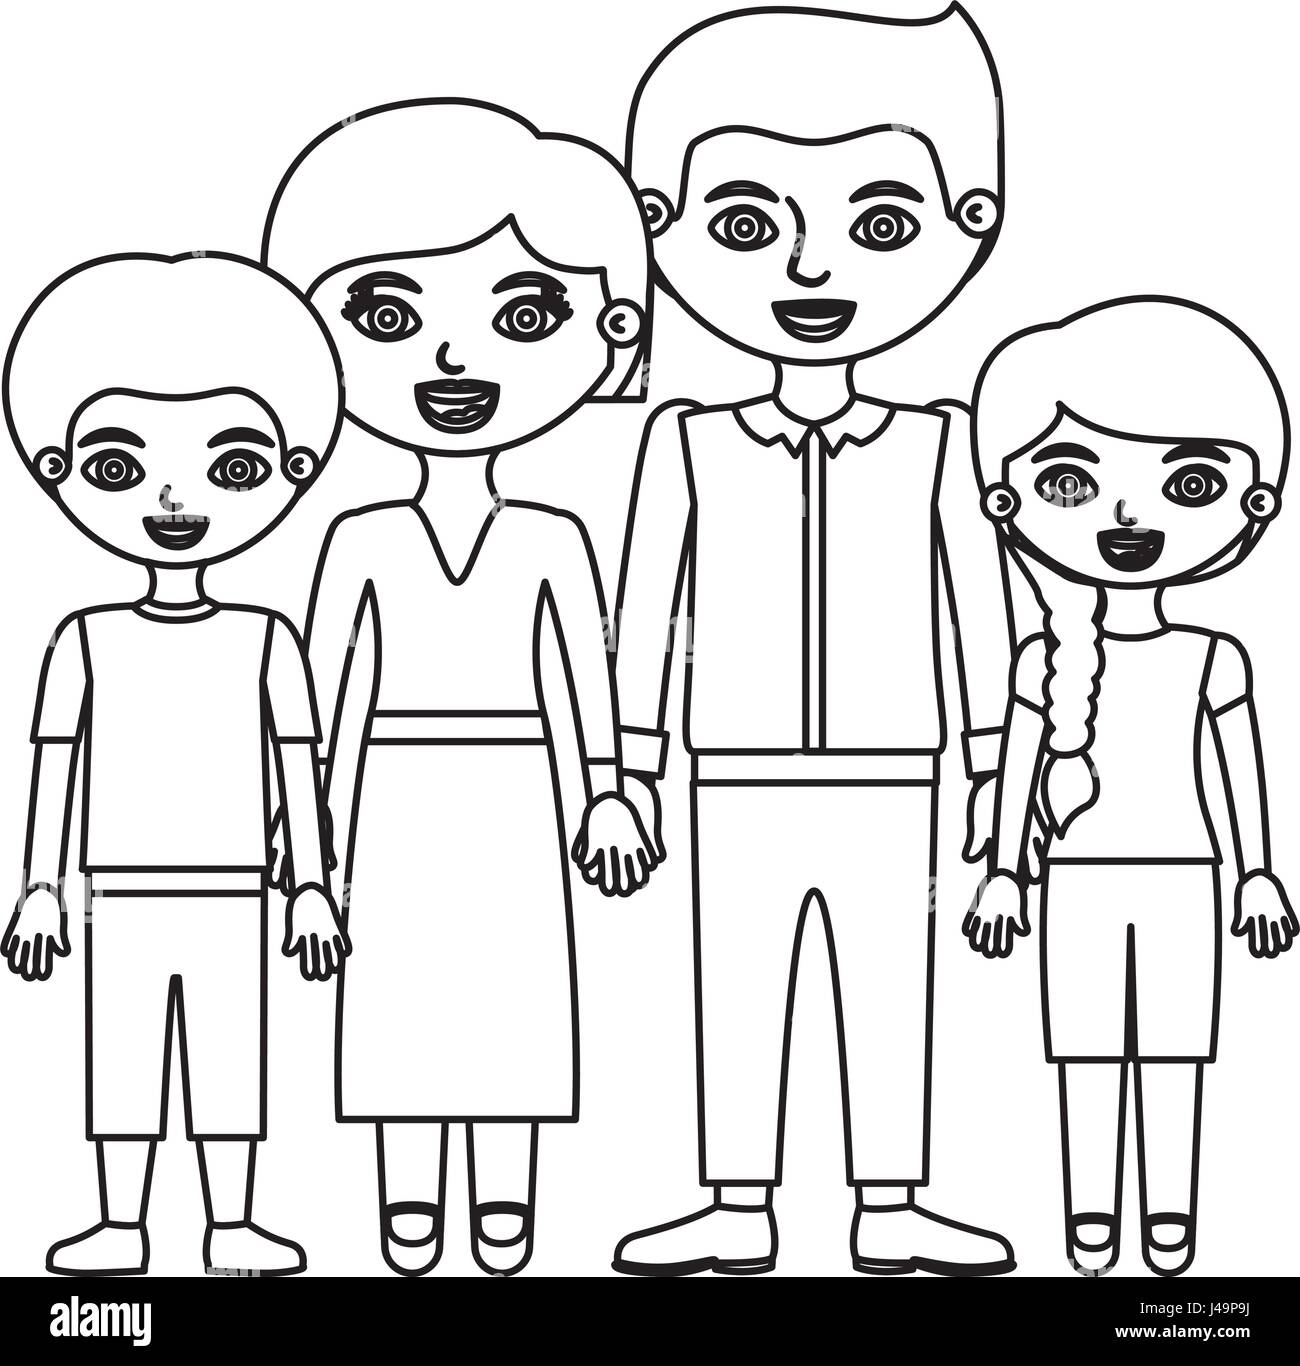 Sketch Silhouette Family Group With Parents In Formal Suit